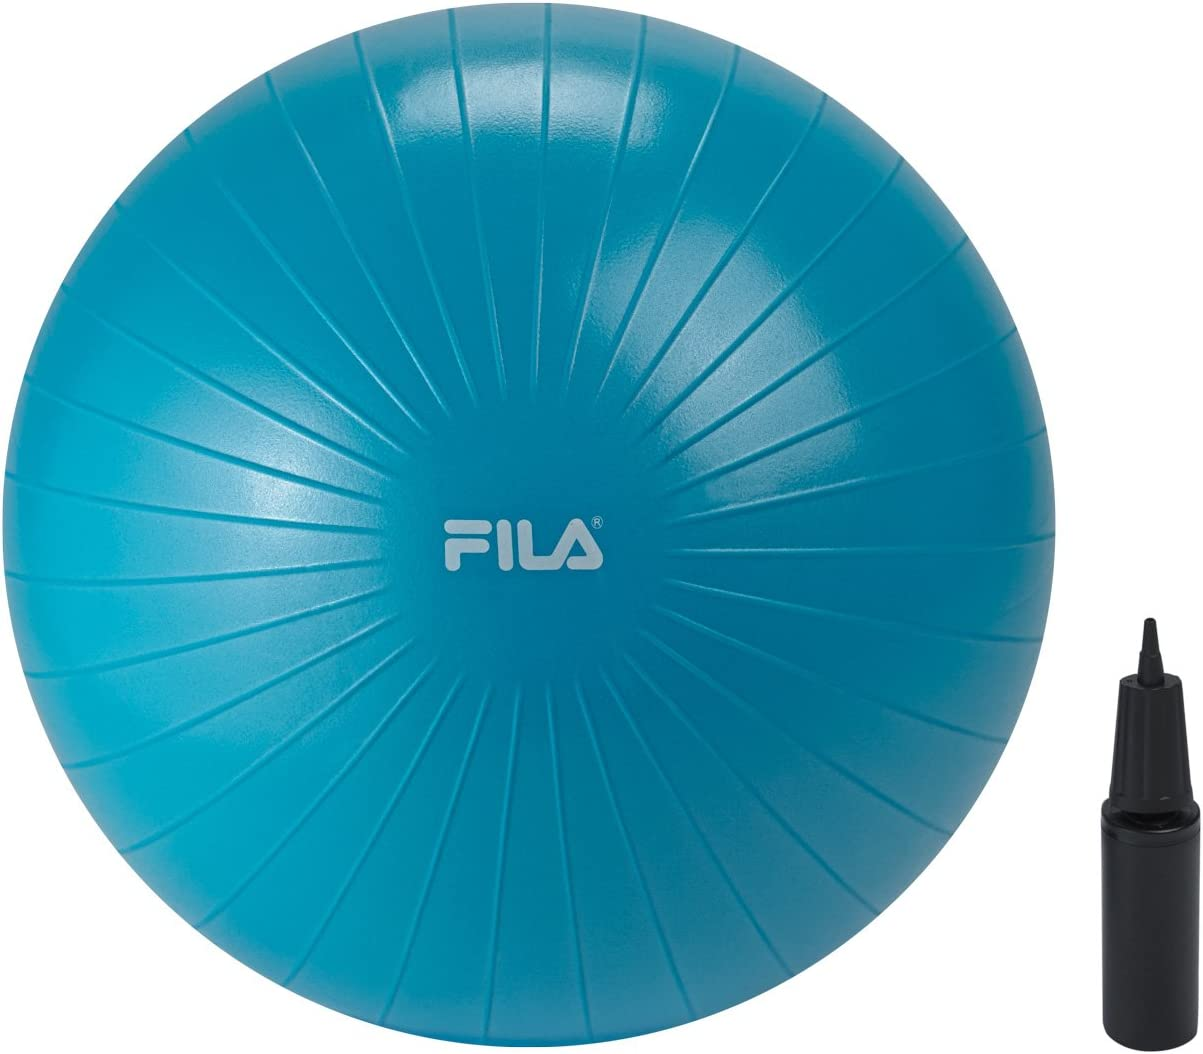 FILA Accessories Stability Ball with Pump